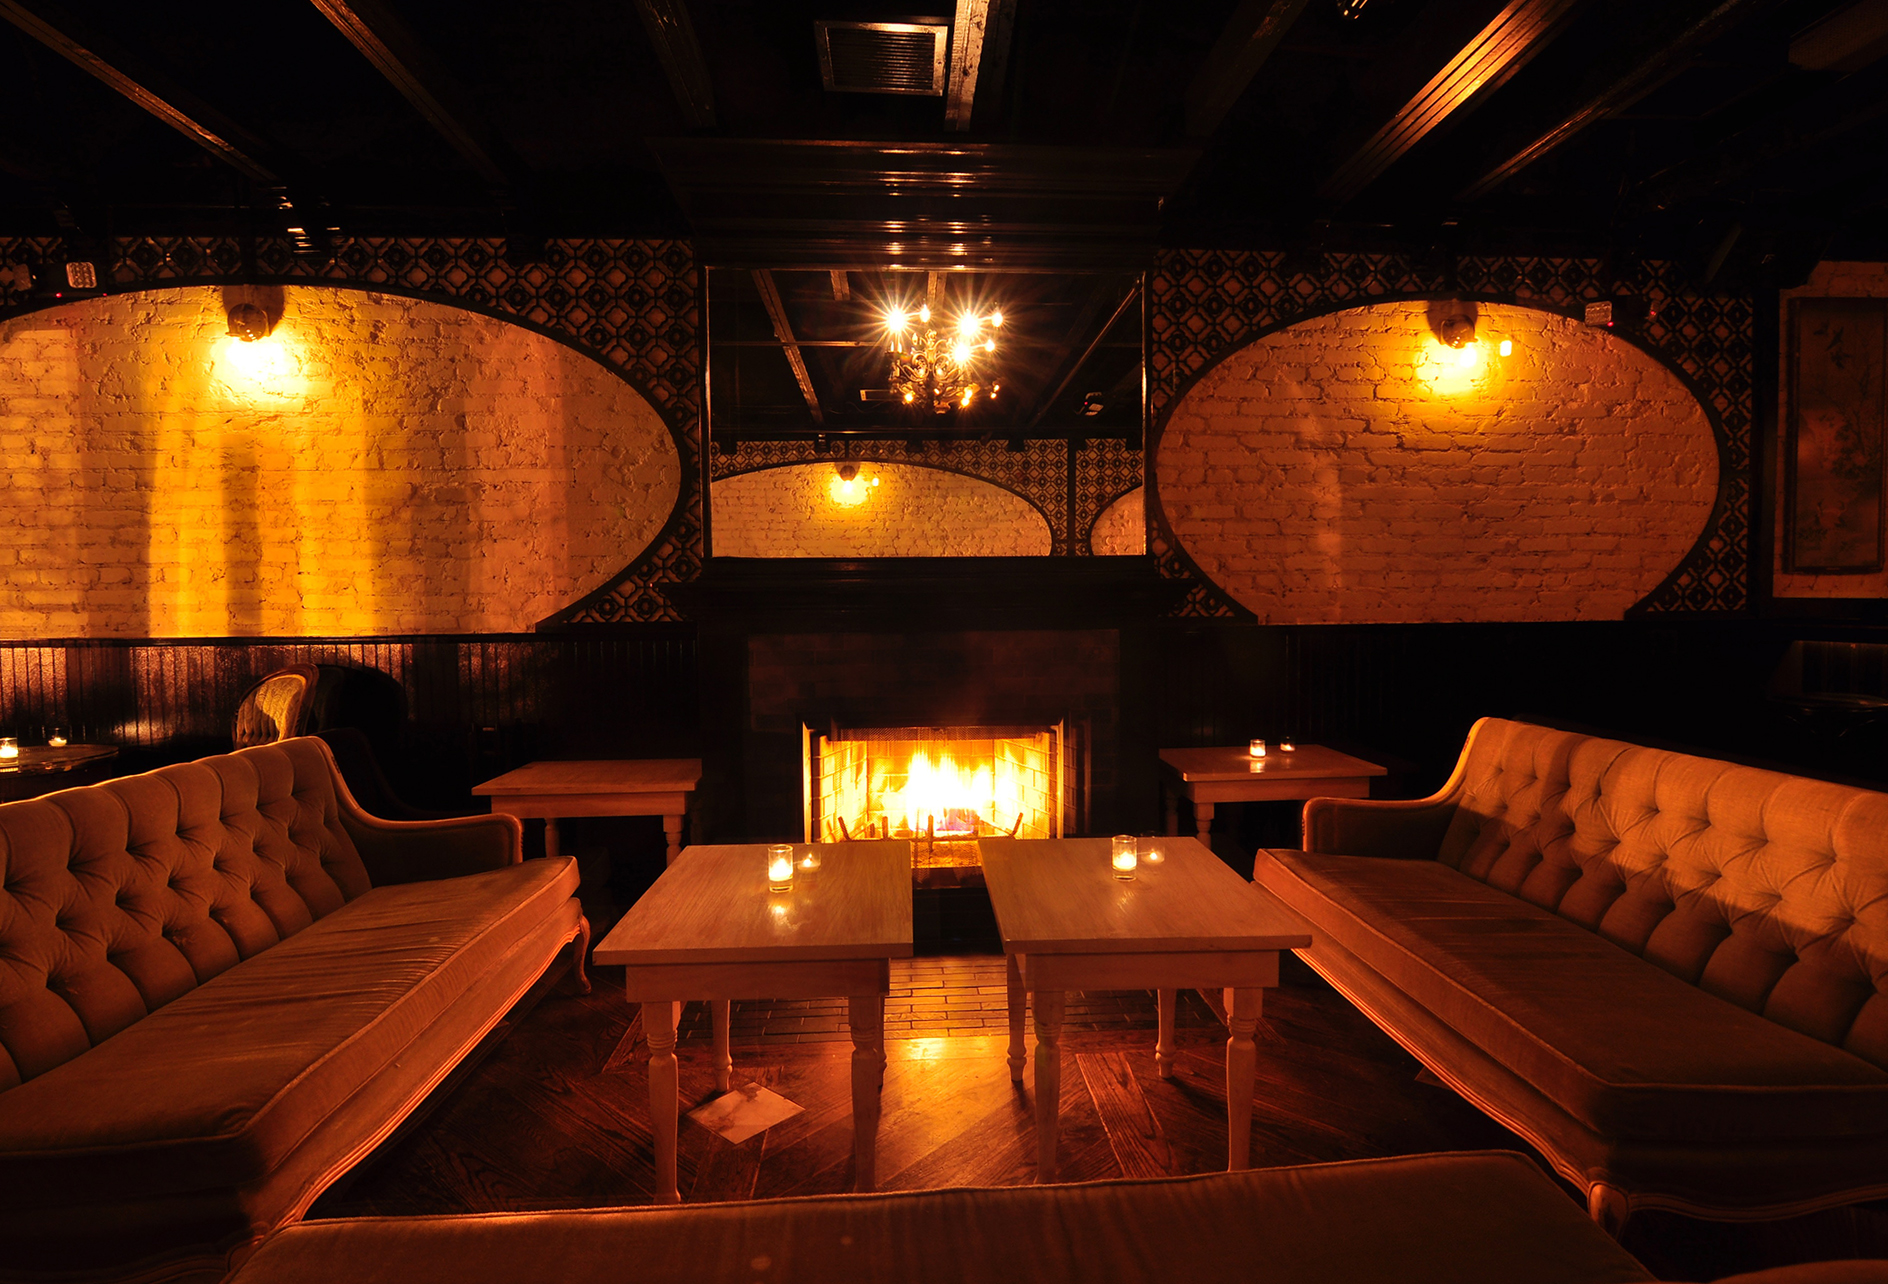 ten tigers seating area with couches dark lighting two couches facing each other.jpg